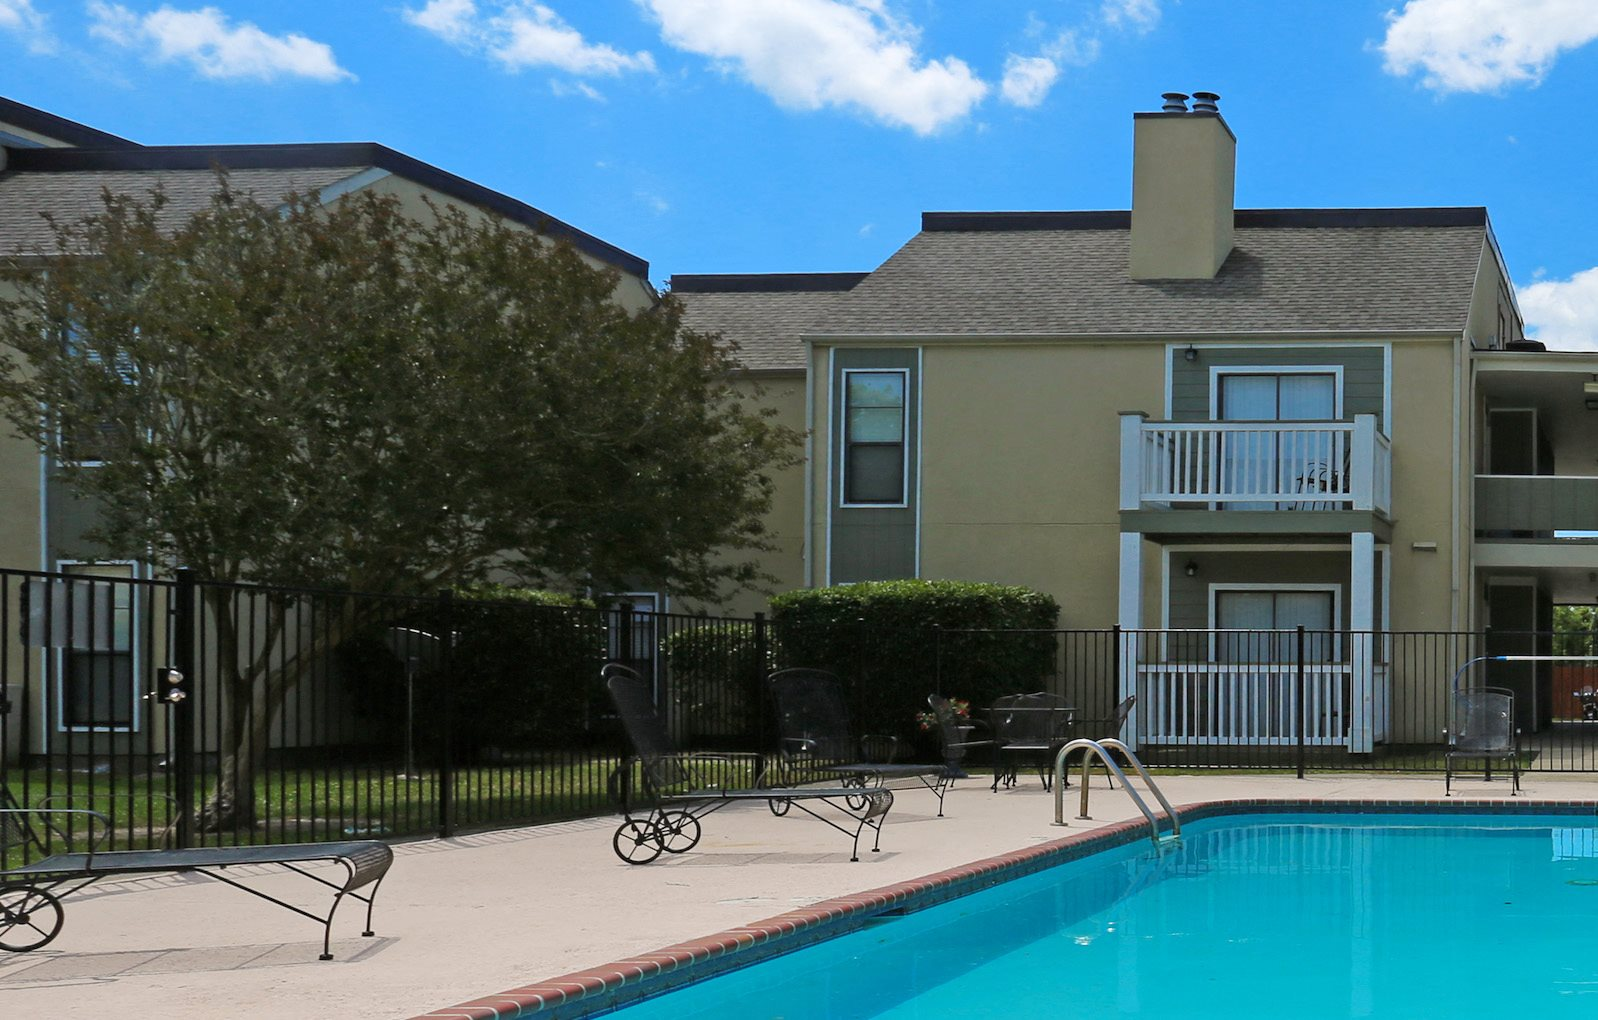 Pecan Acres Apartments for rent in Lake Charles, LA pool and balconies